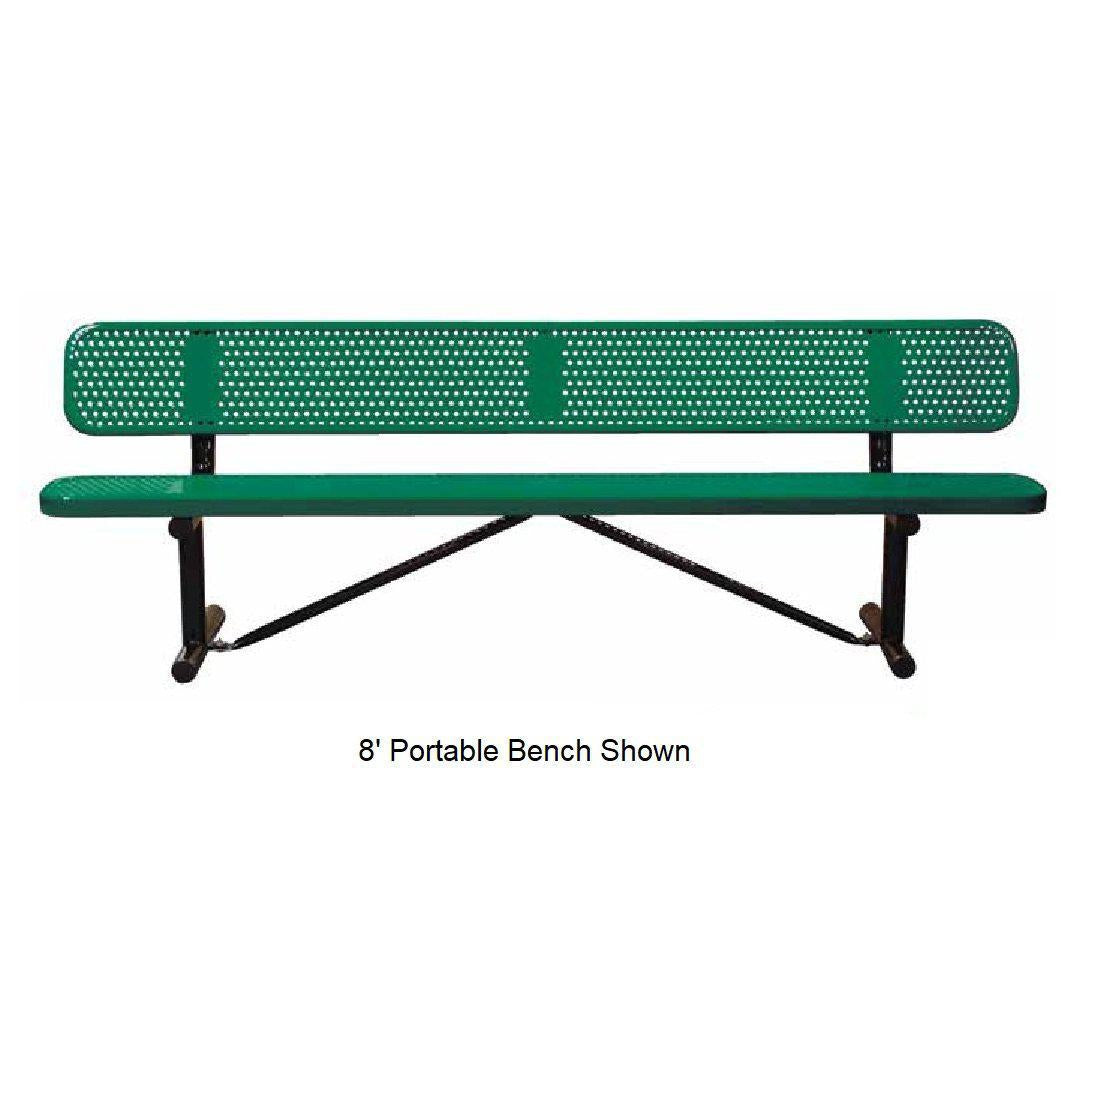 15' Standard Perforated Bench With Back, Portable